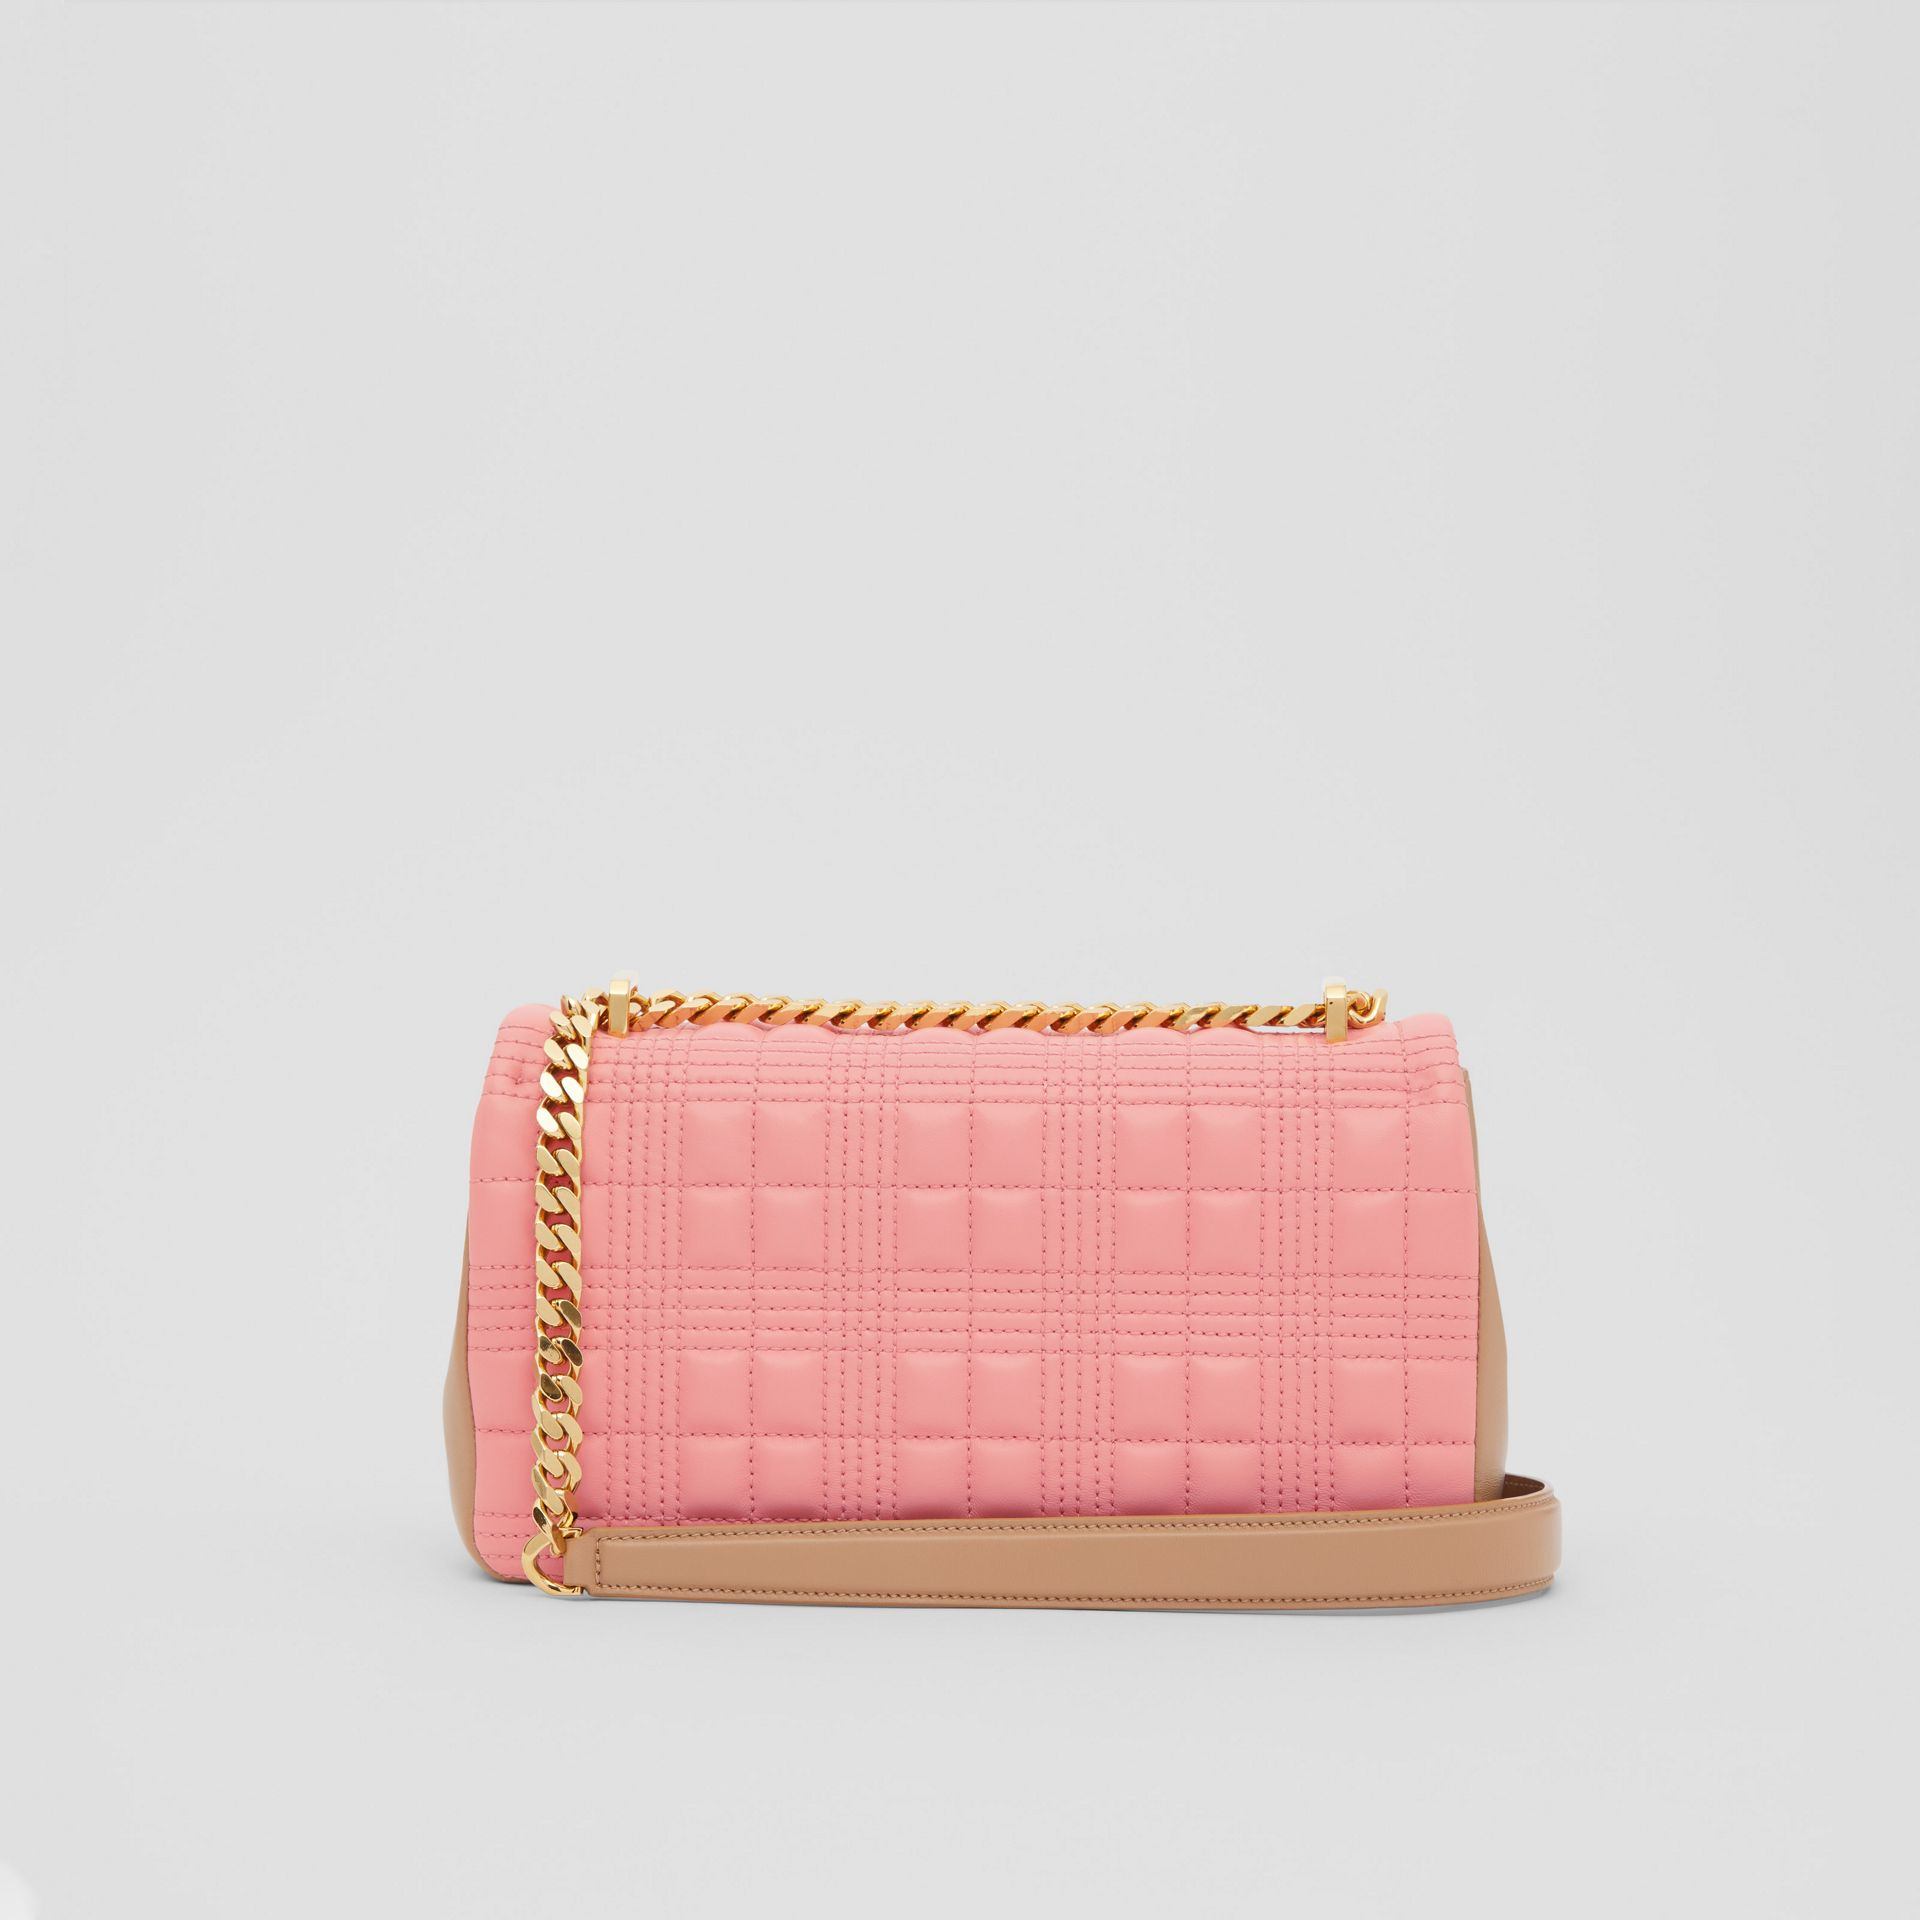 Small Quilted Two-tone Lambskin Lola Bag in Peony/camel - Women | Burberry United Kingdom - gallery image 7